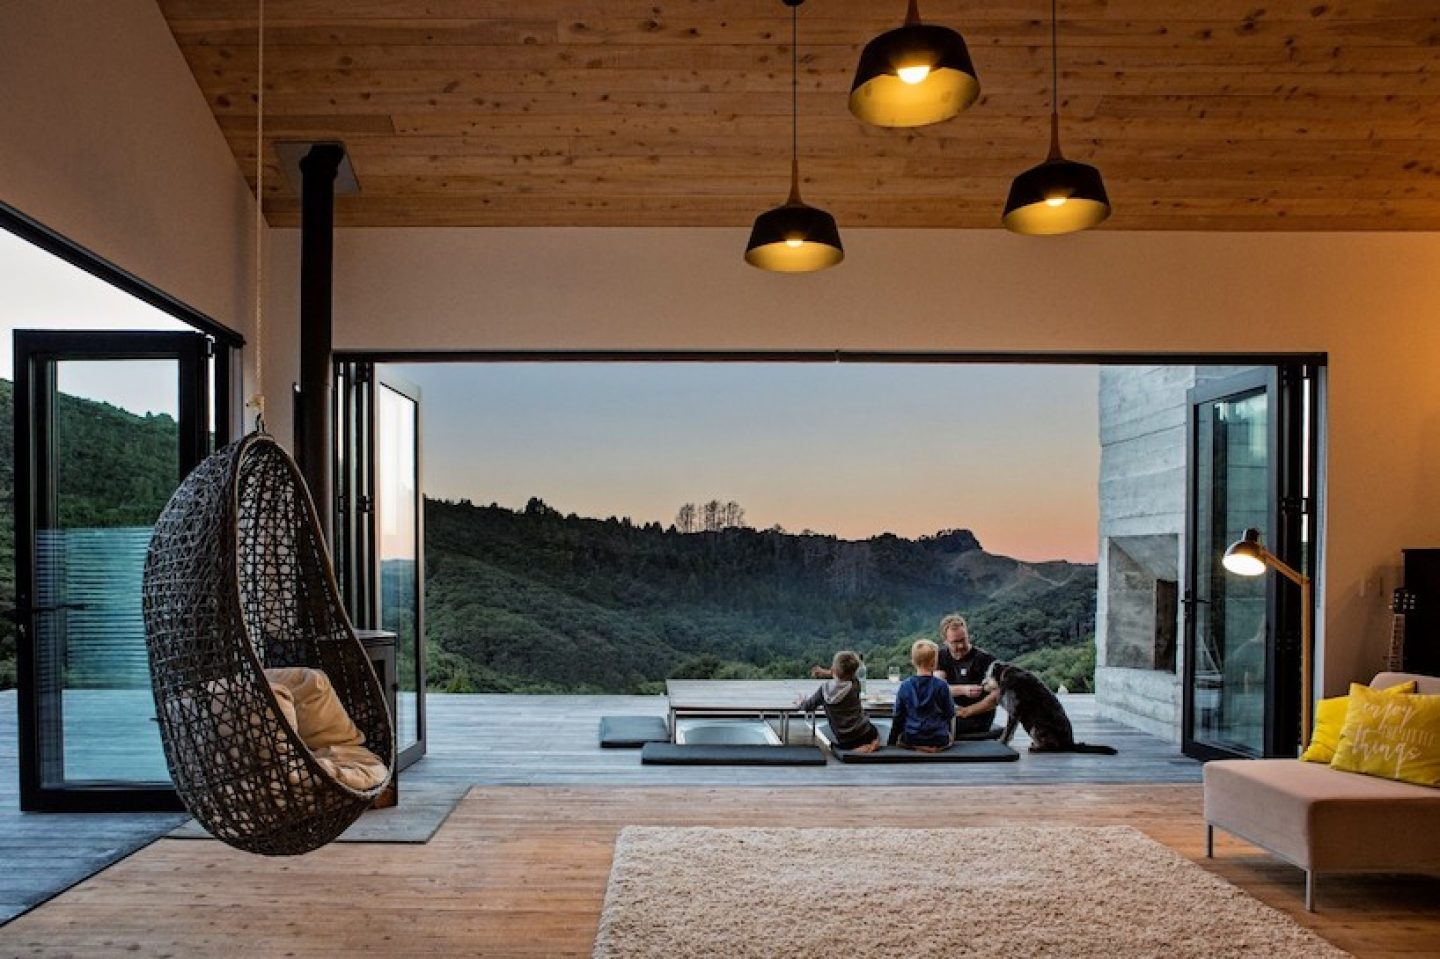 david-maurice-LTD-architectural-back-country-house-puhoi-new-zealand-ignant_11